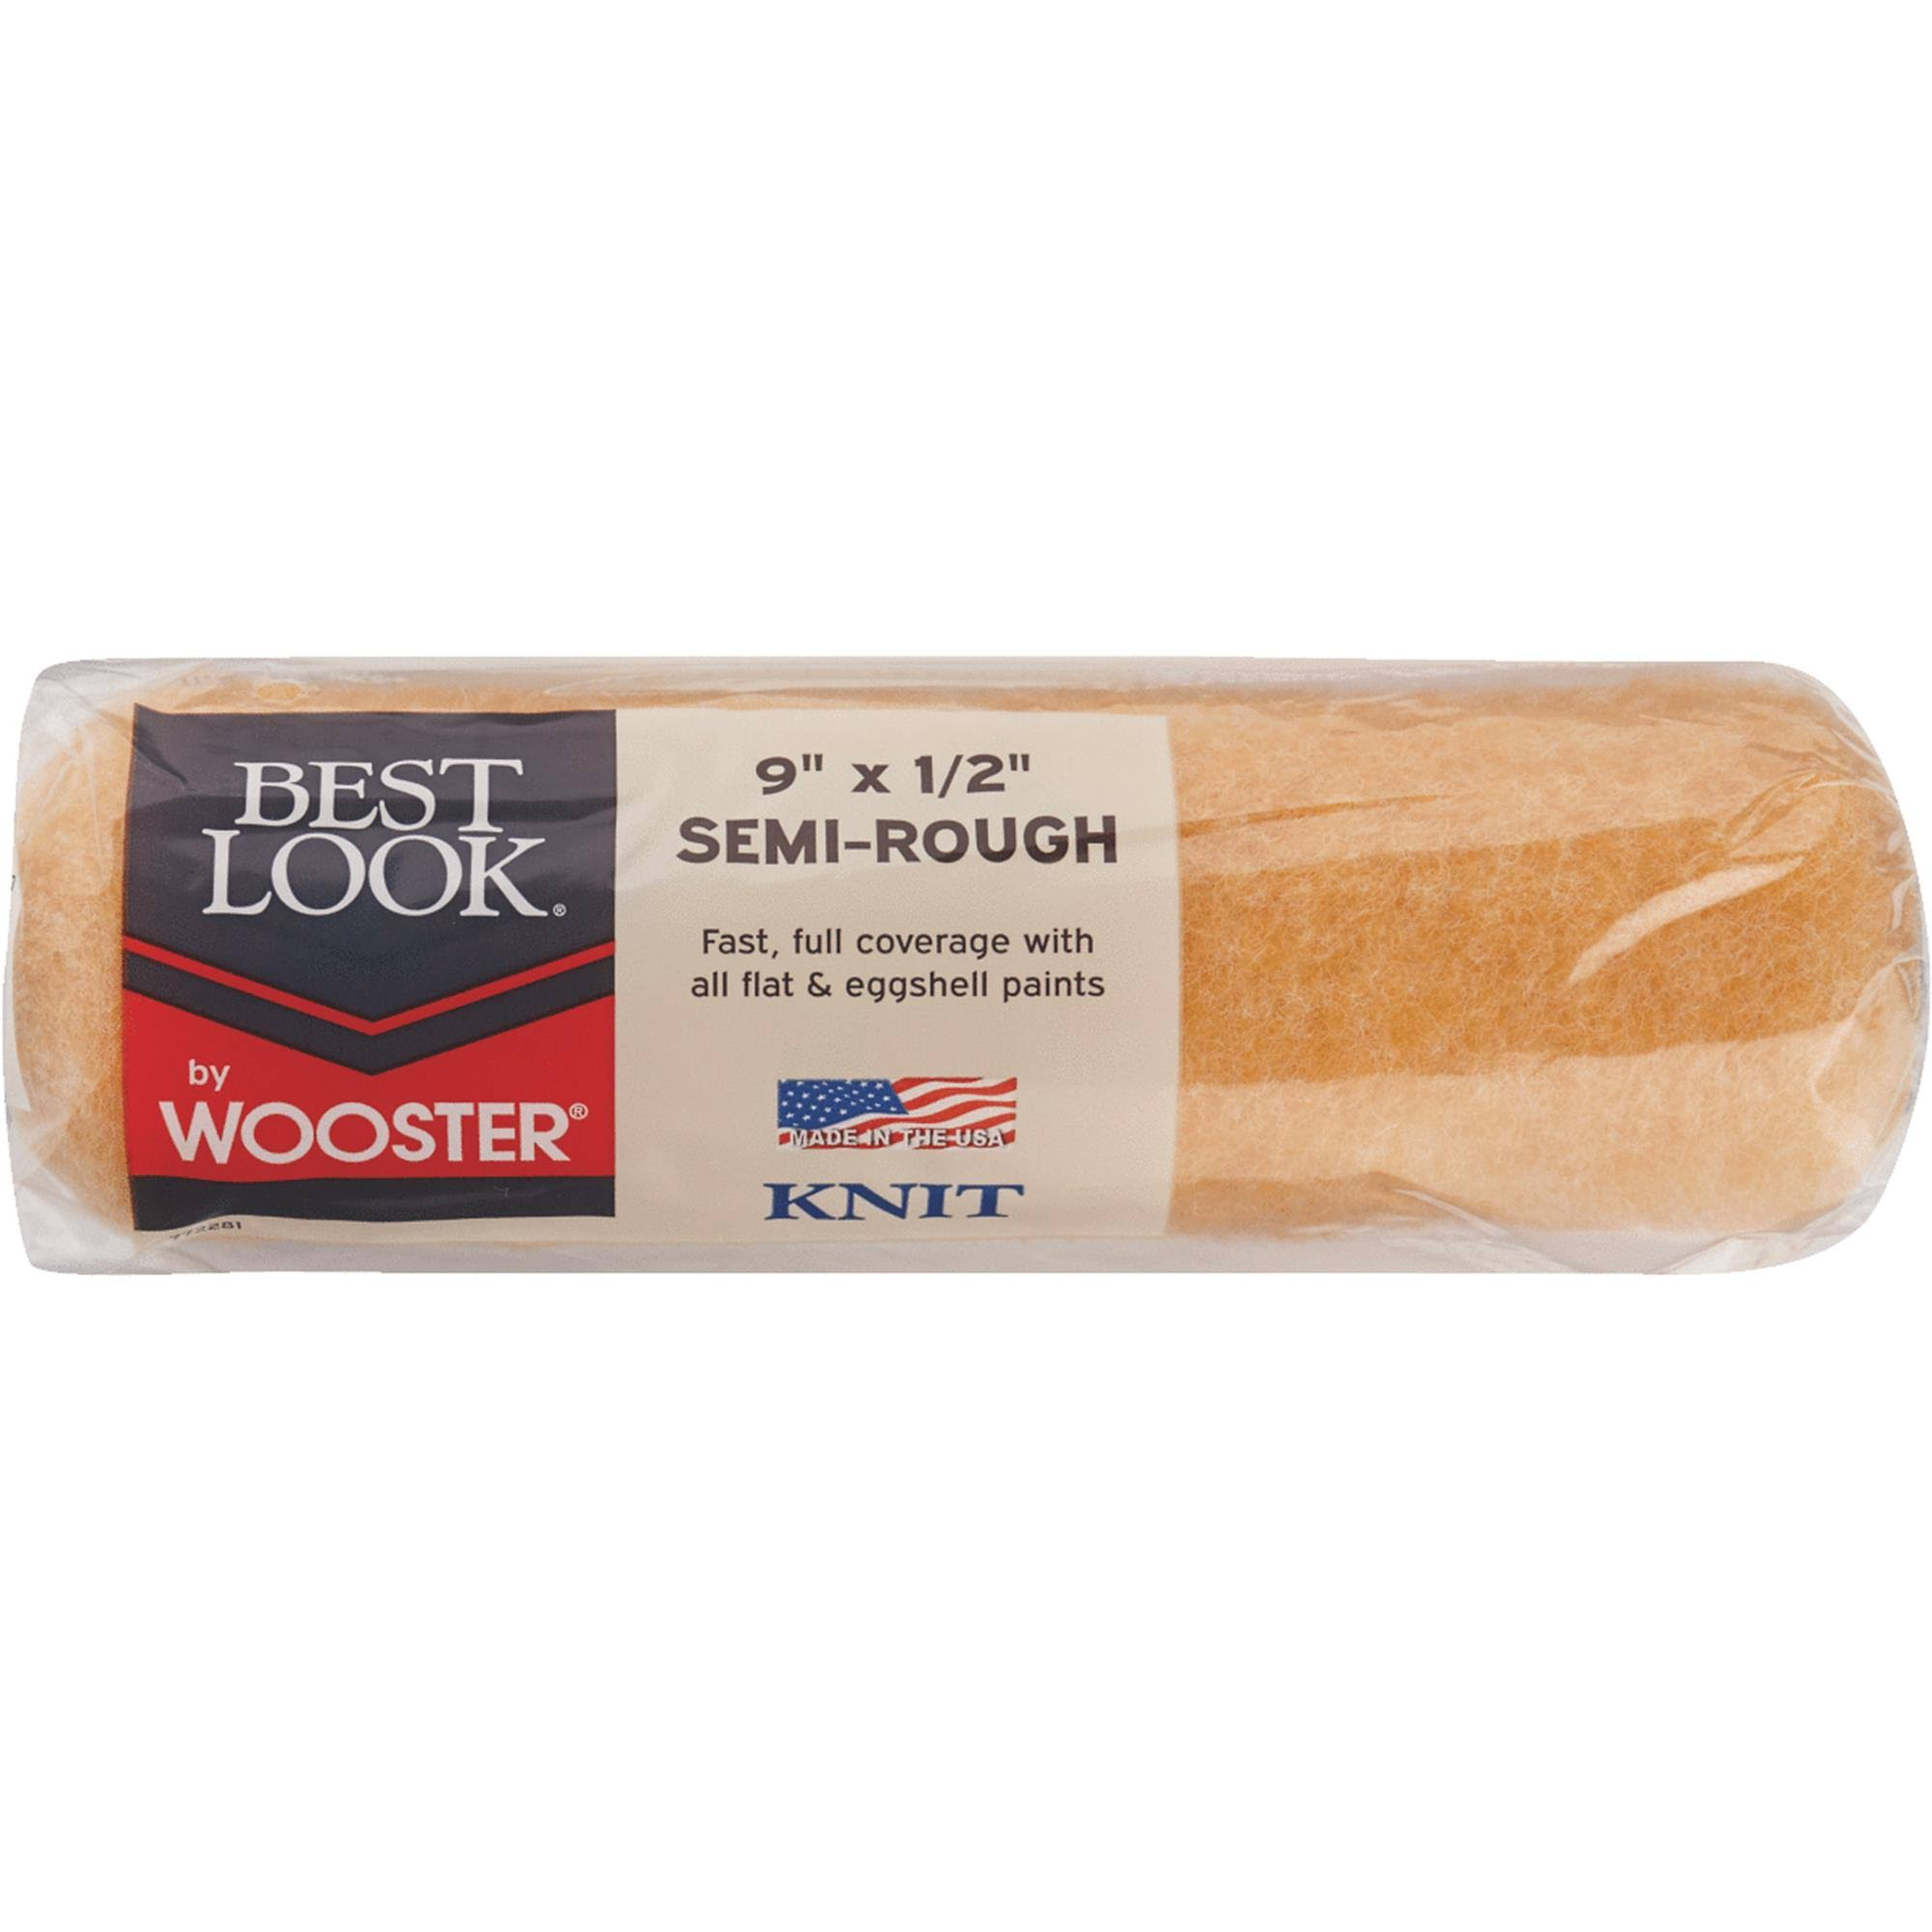 Wooster Brush 9x1/2 Knit Roller Cover DR422-9